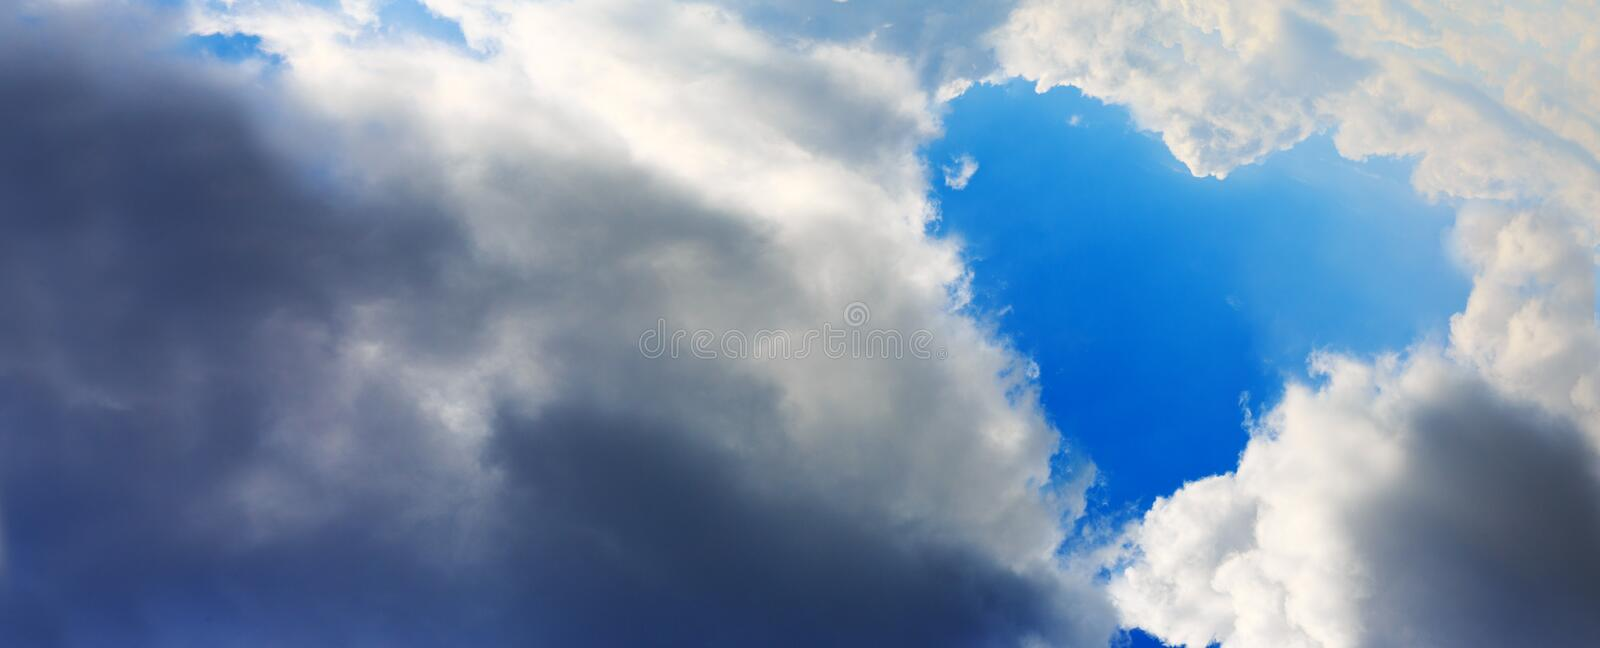 Heart shapes cloud on blue sky. royalty free stock photography